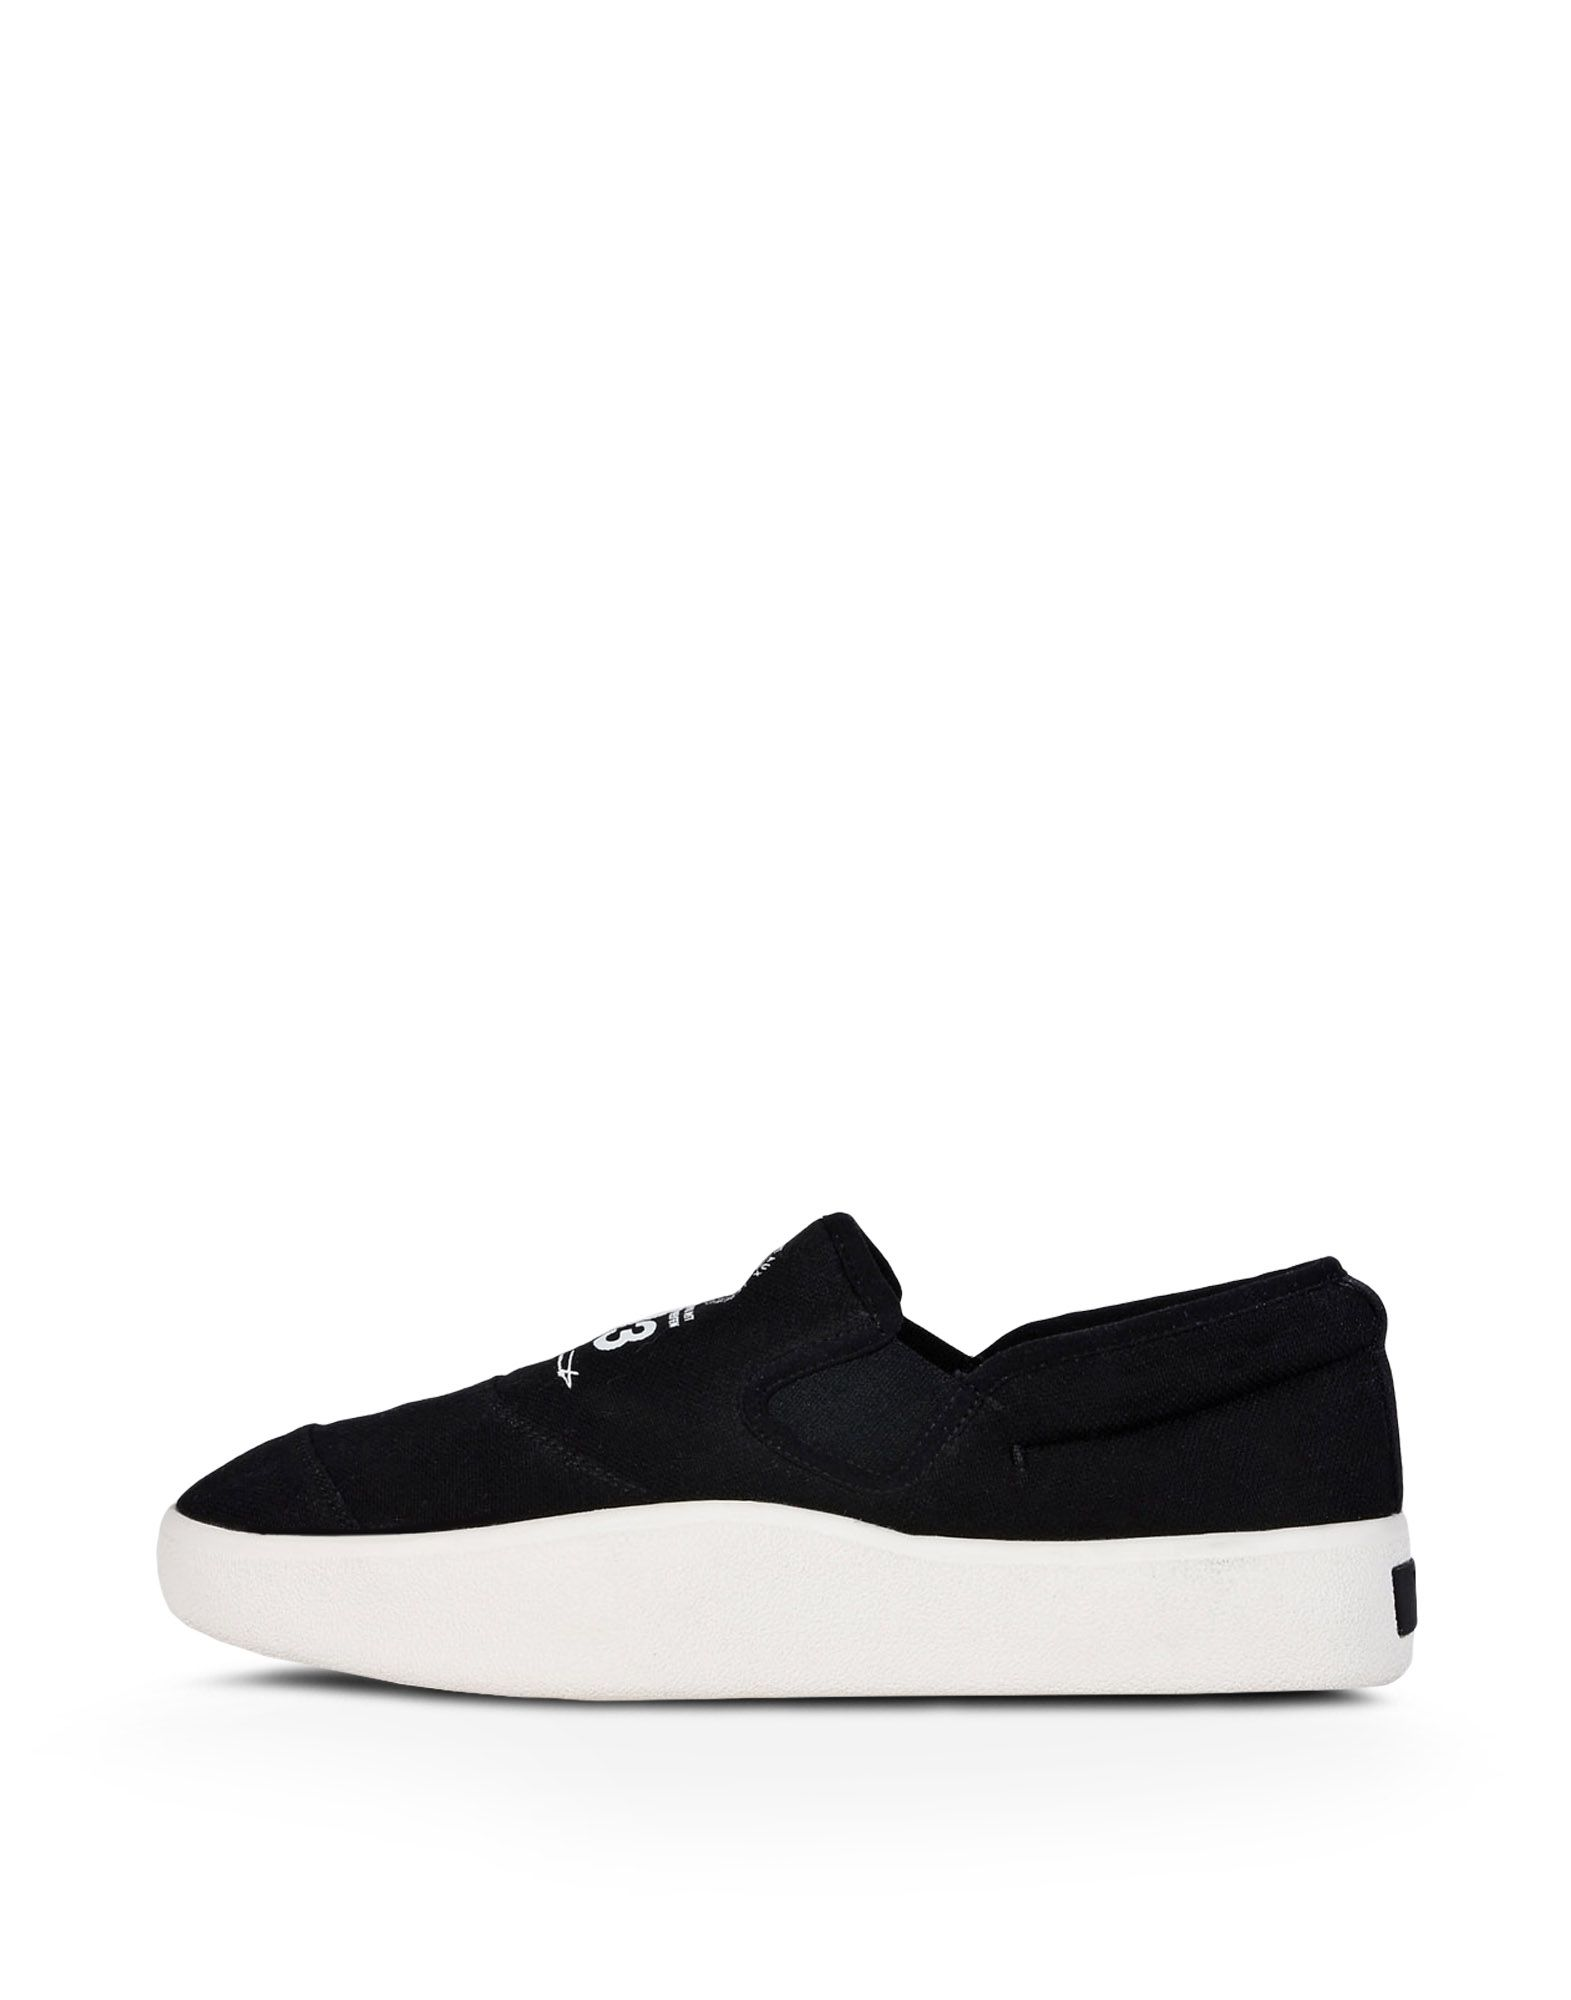 Y-3 Black Tangutsu Sneakers